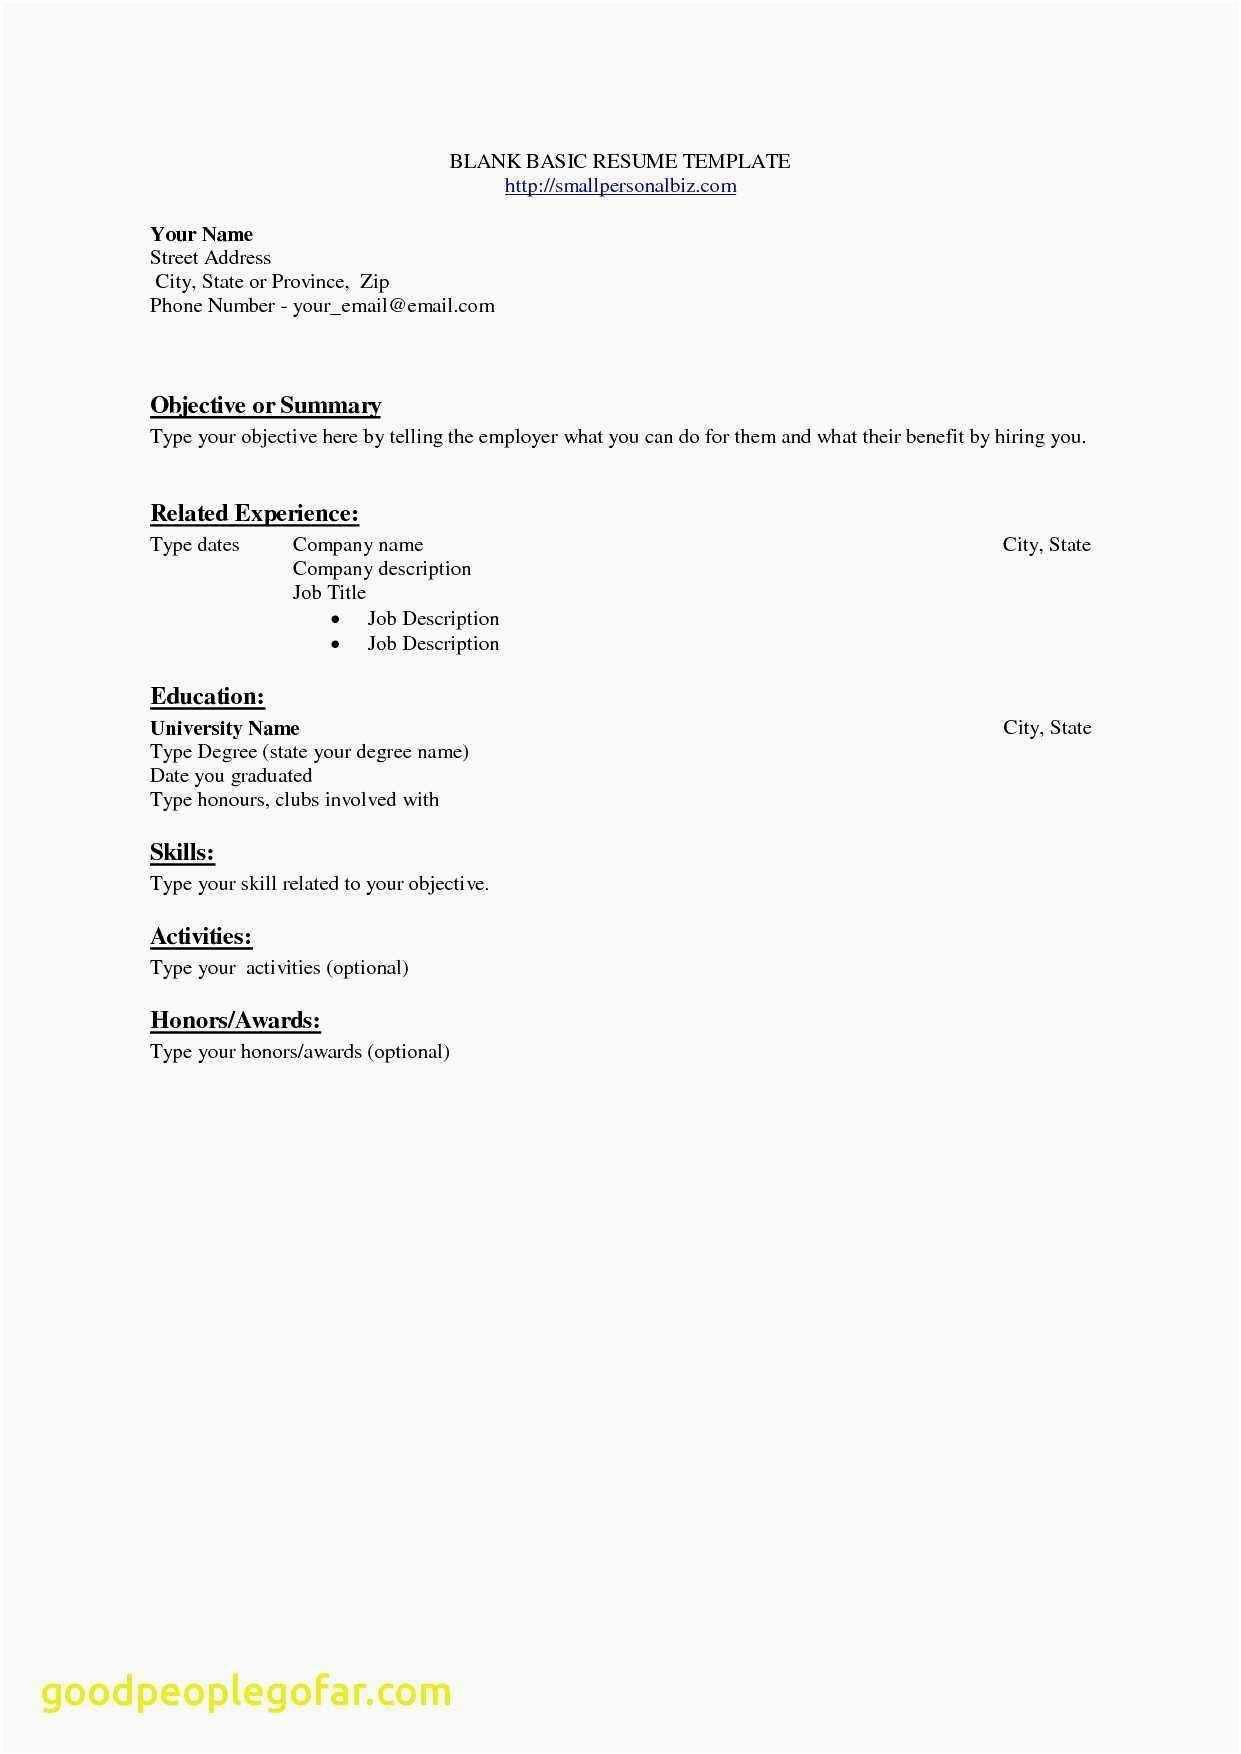 Writing A Good Resume - Resume Sample Objectives Lovely Should A Resume Be E Page Unique